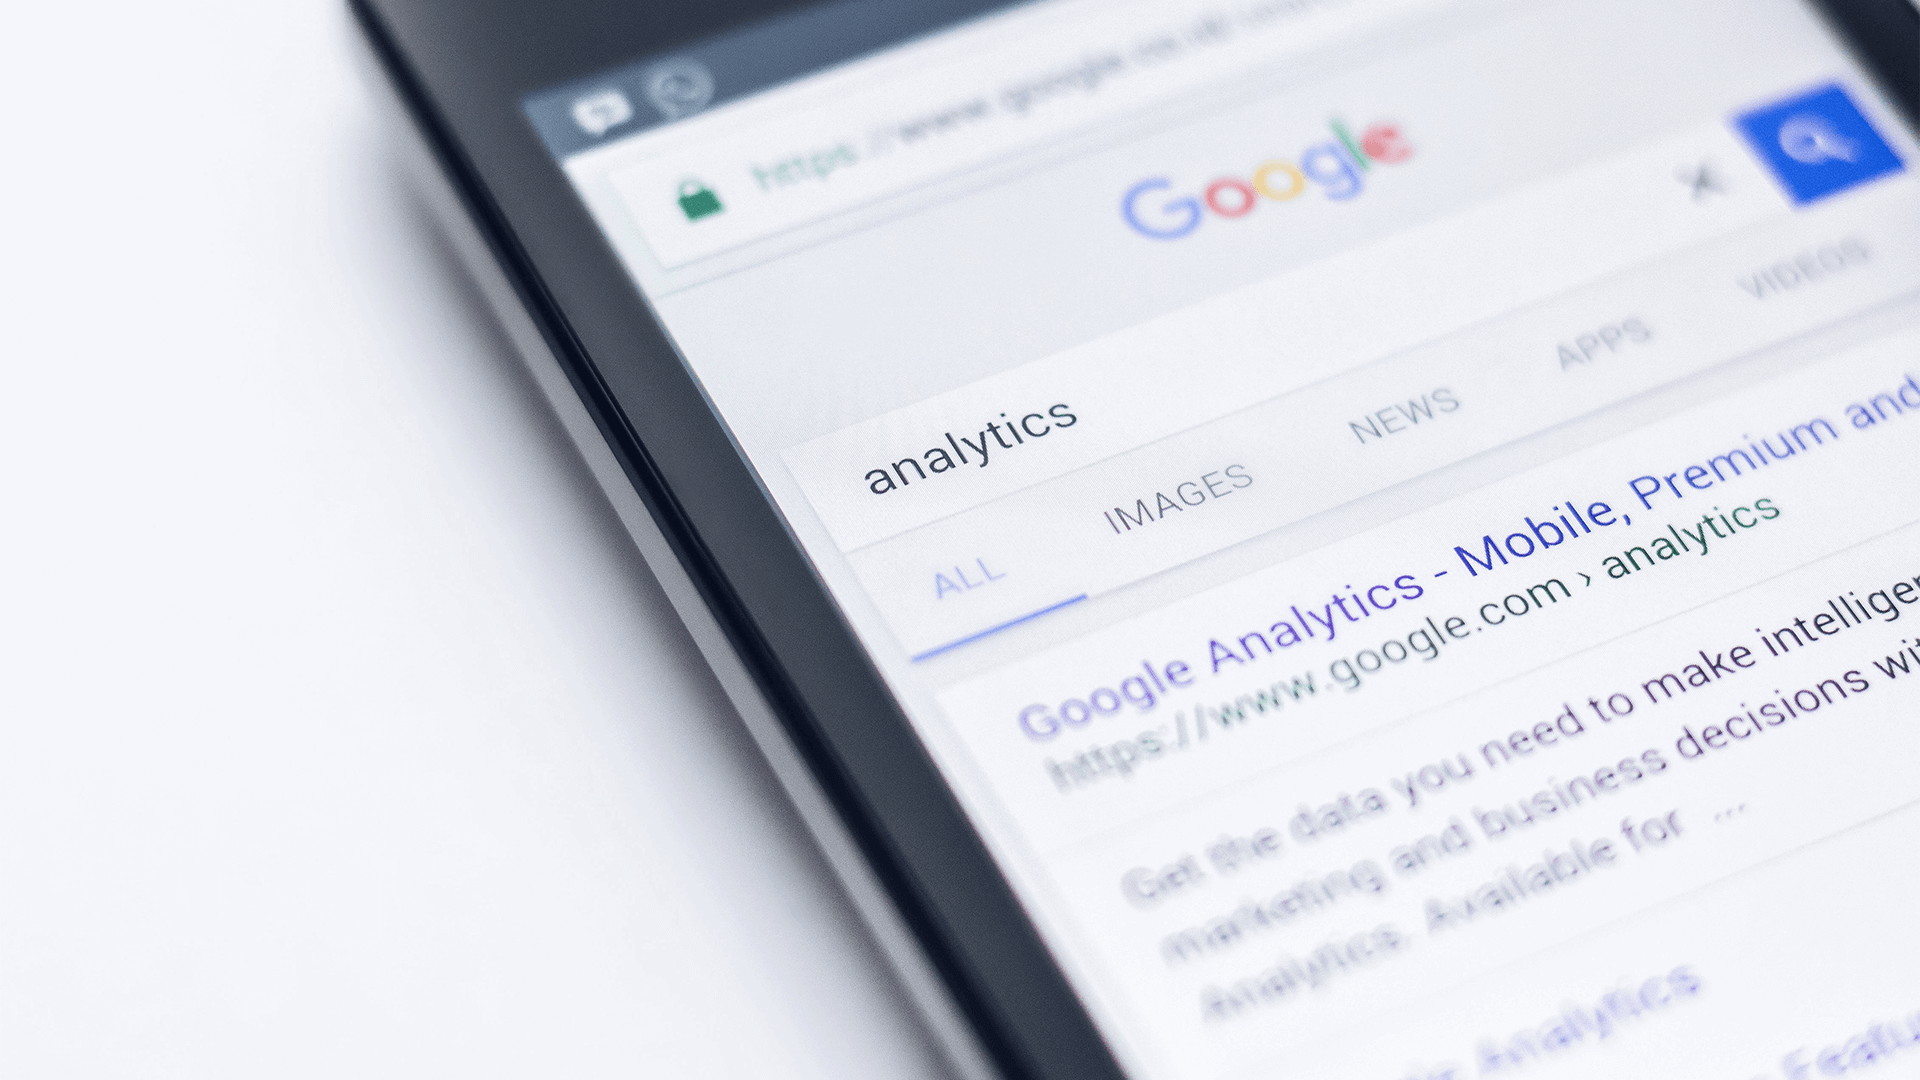 Google Analytics is a great tool that should be used by all website owners